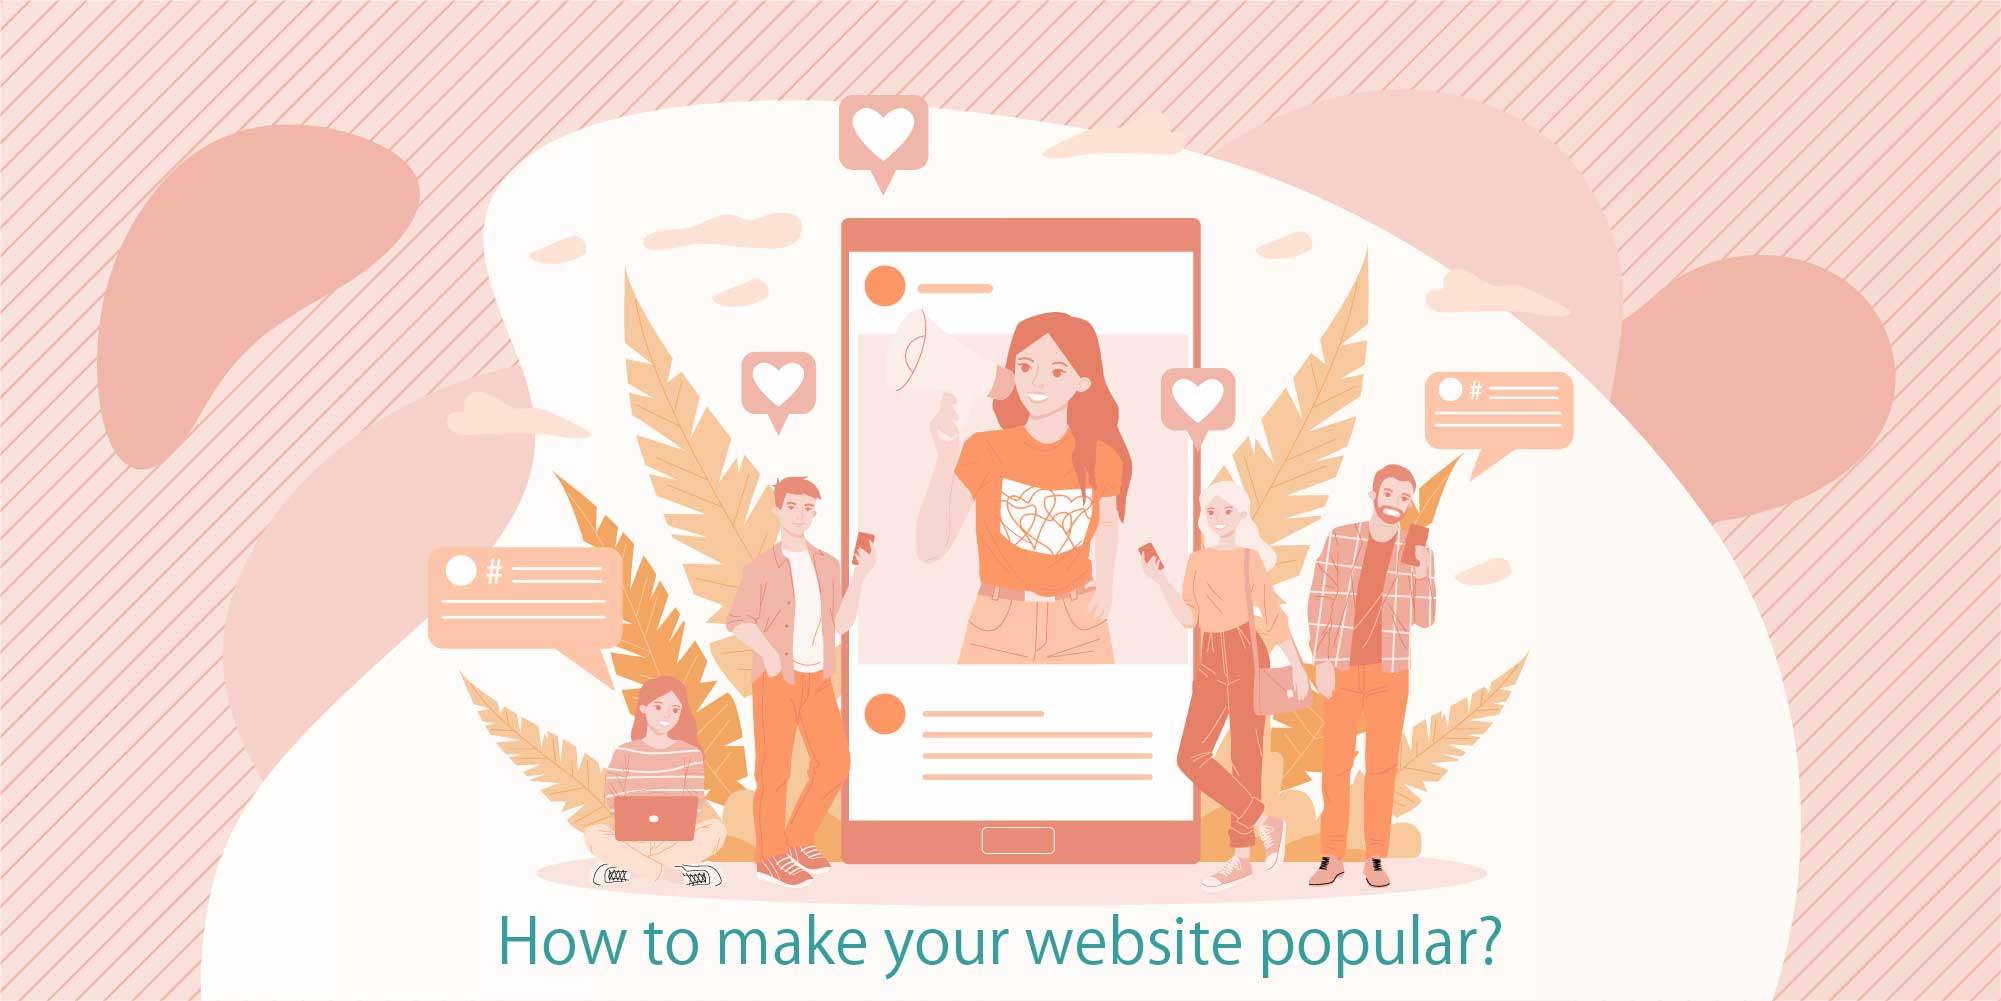 How to make your website popular?